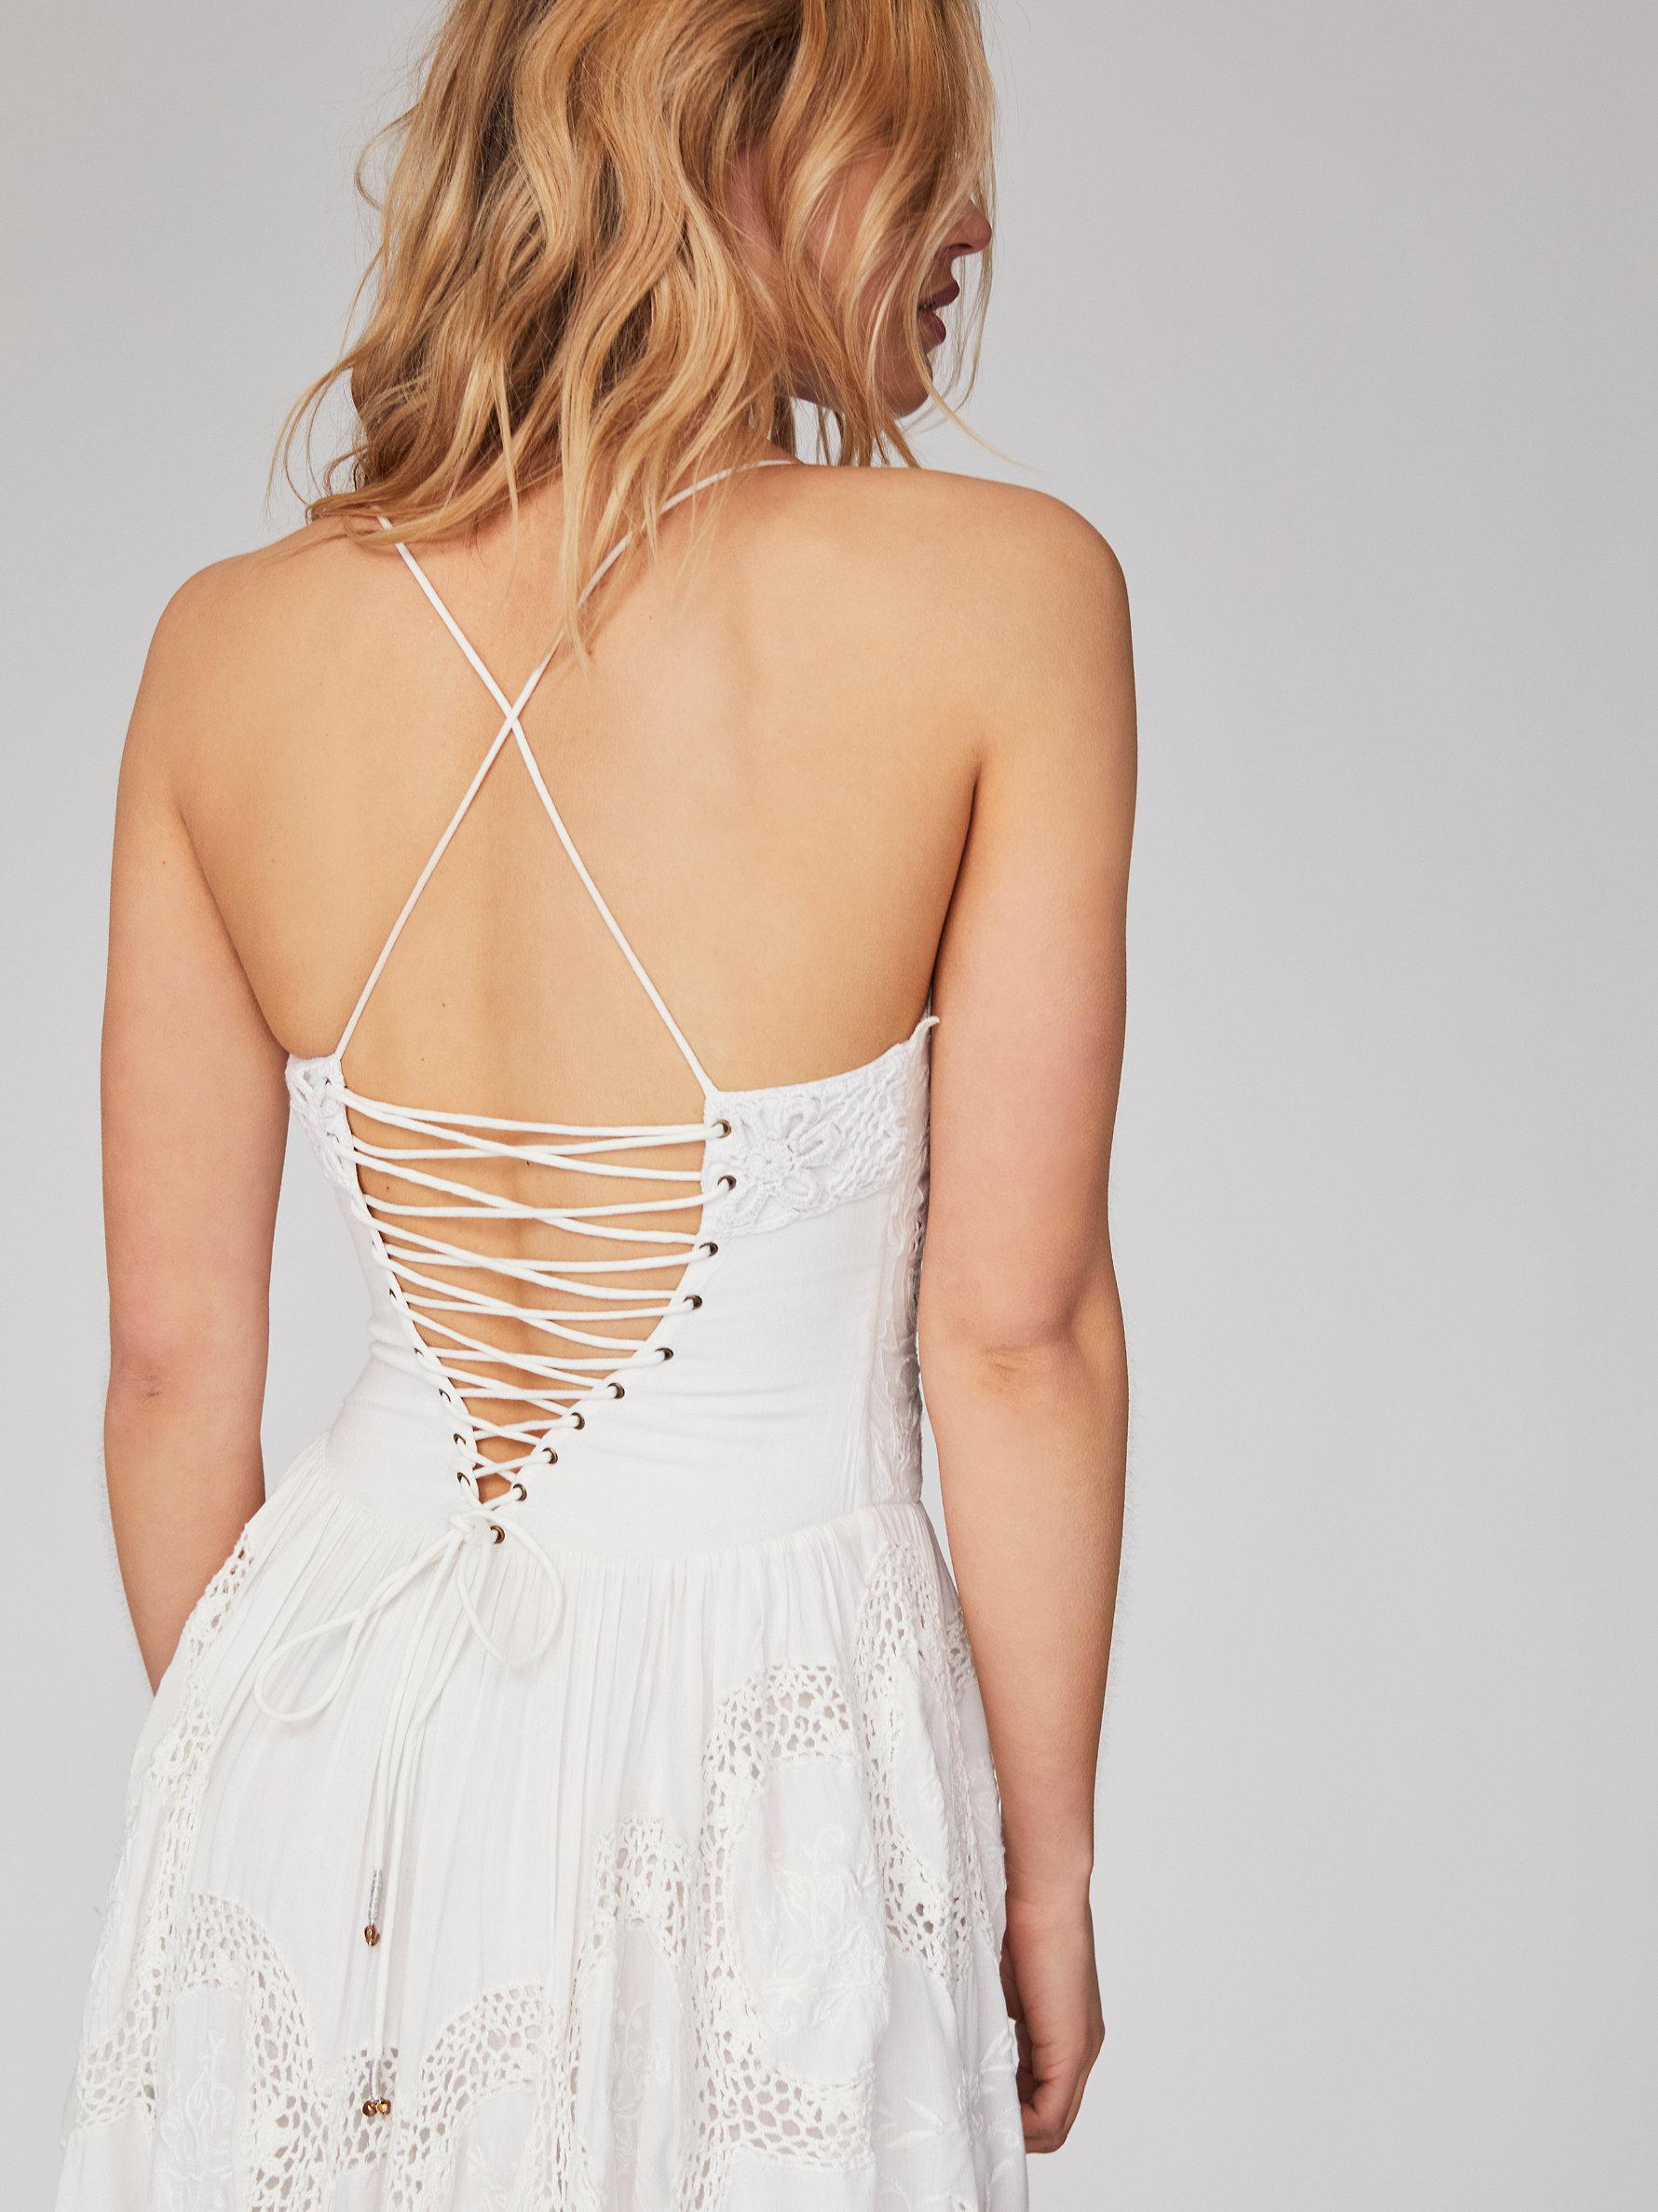 931c5f148b1a Free People Love To Love You Cutwork Dress in White - Lyst